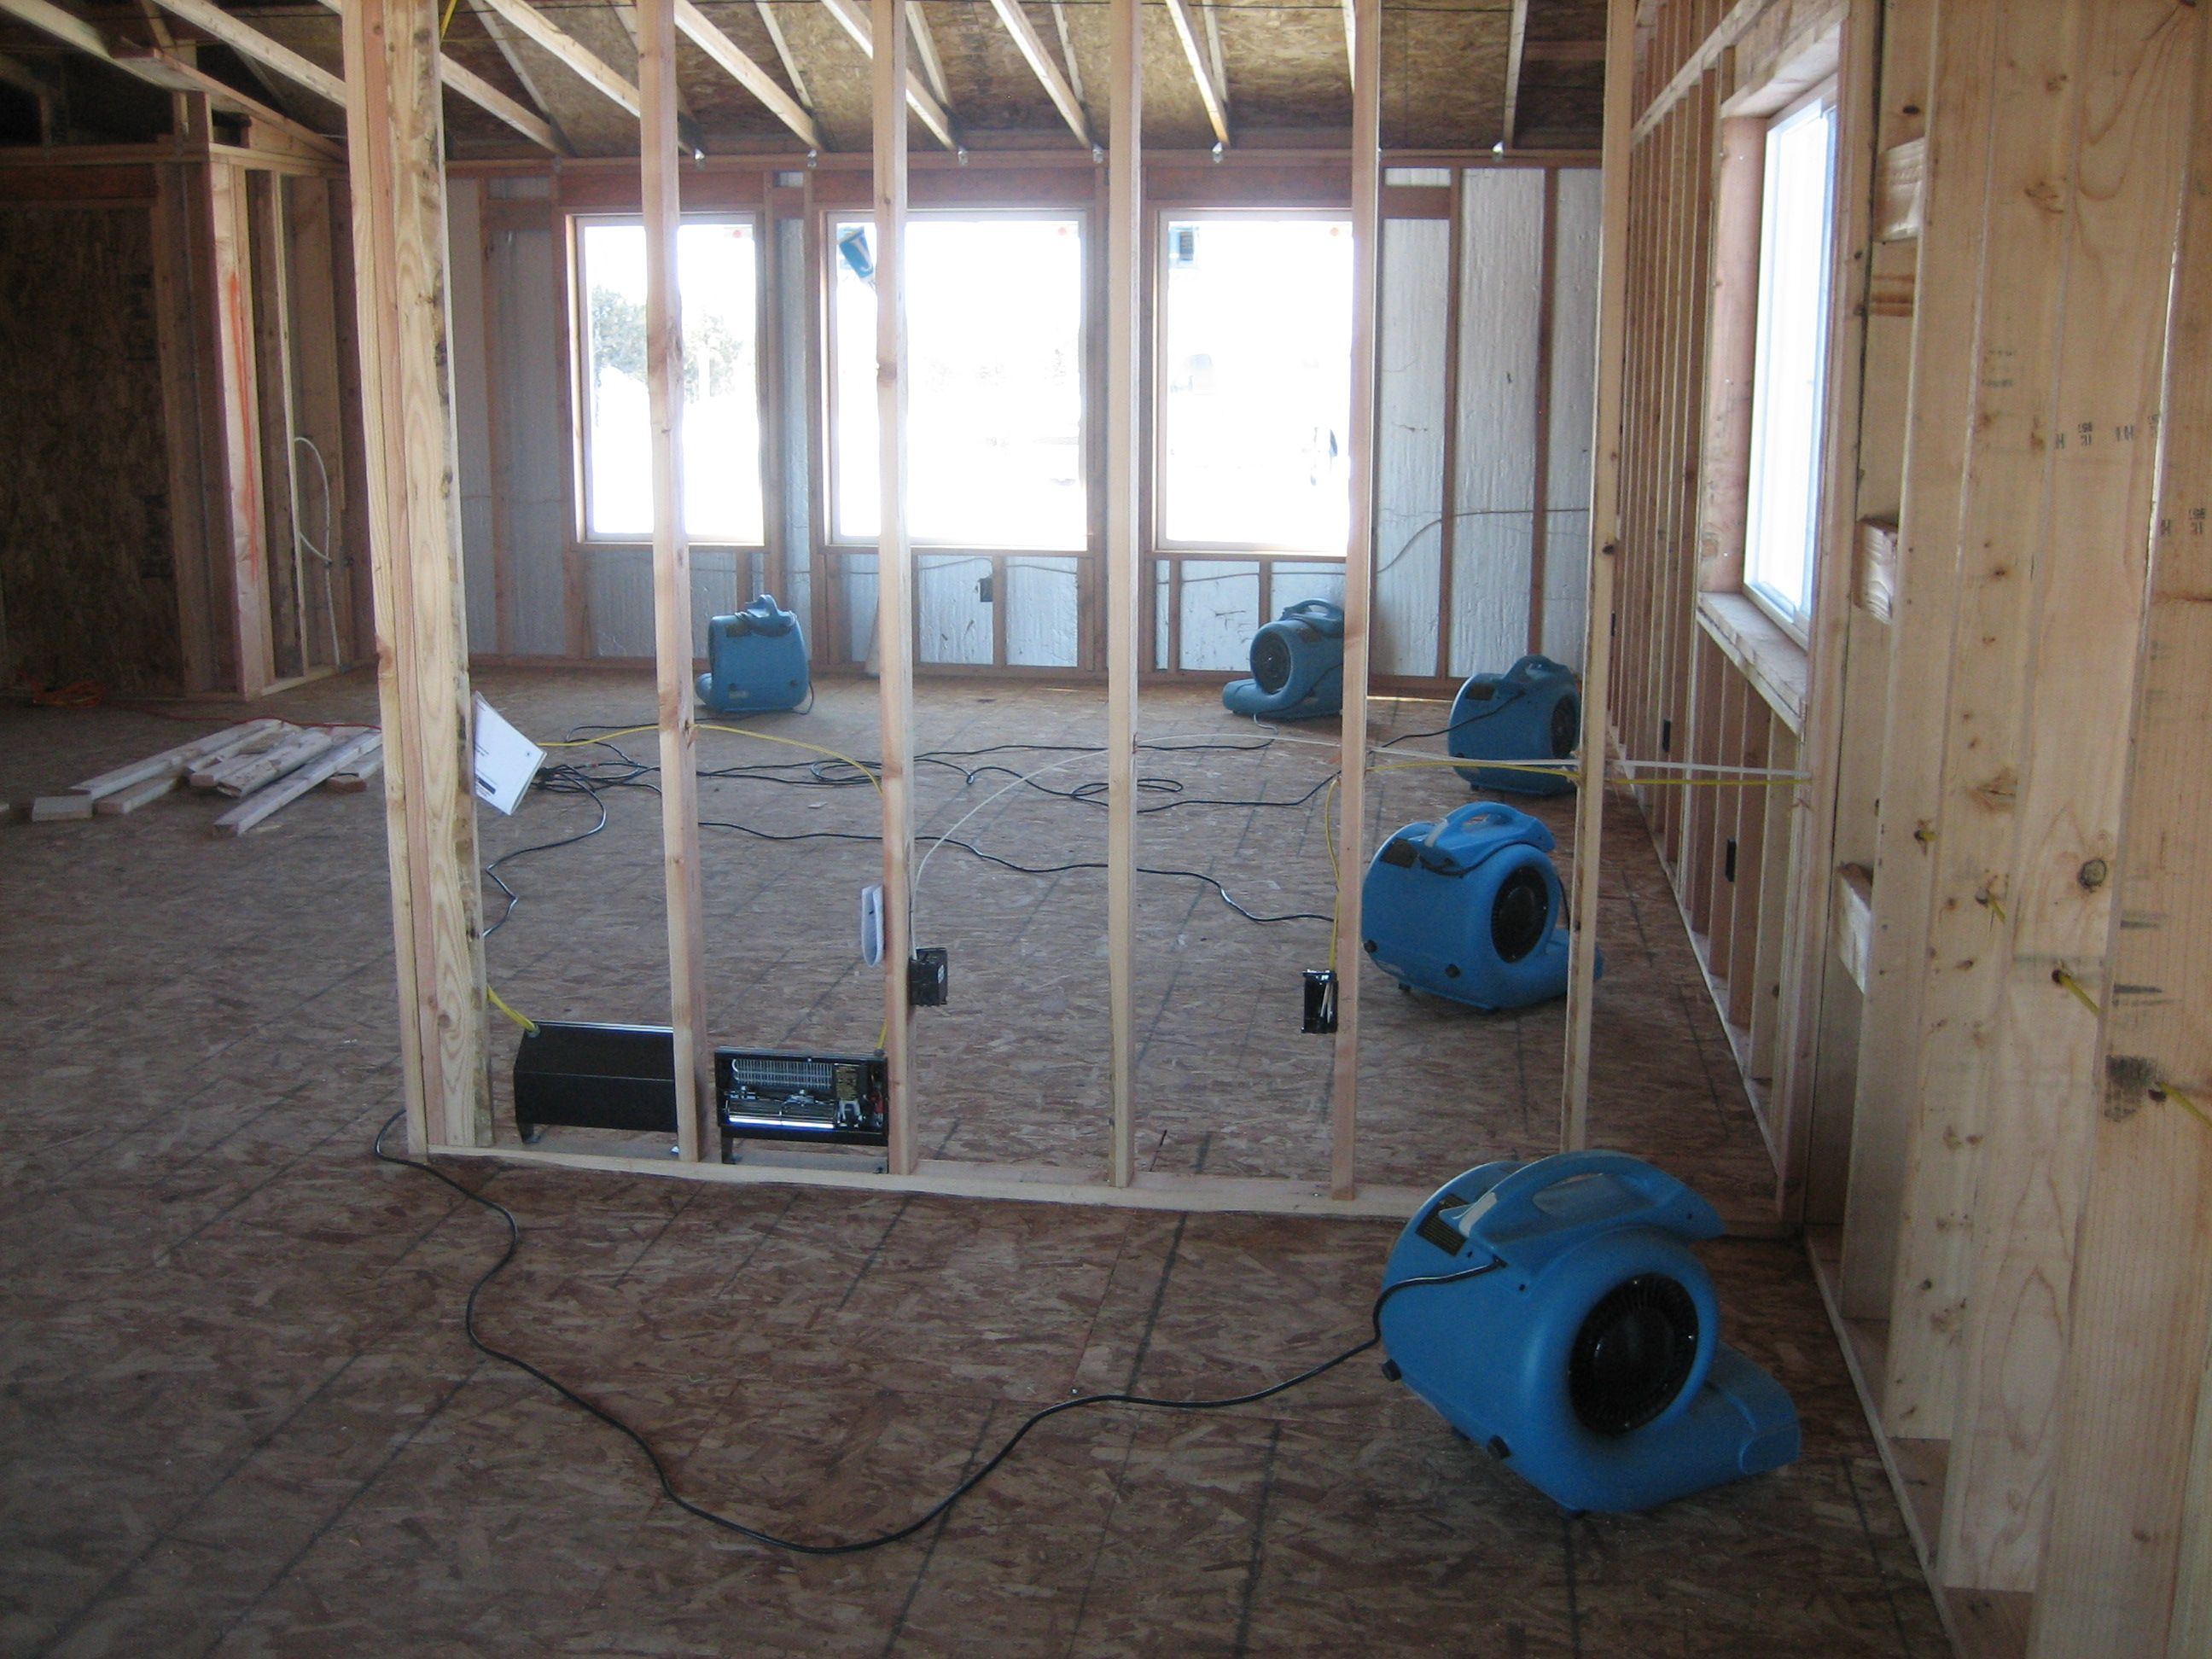 Airdryers help speed along the water damage restoration process when